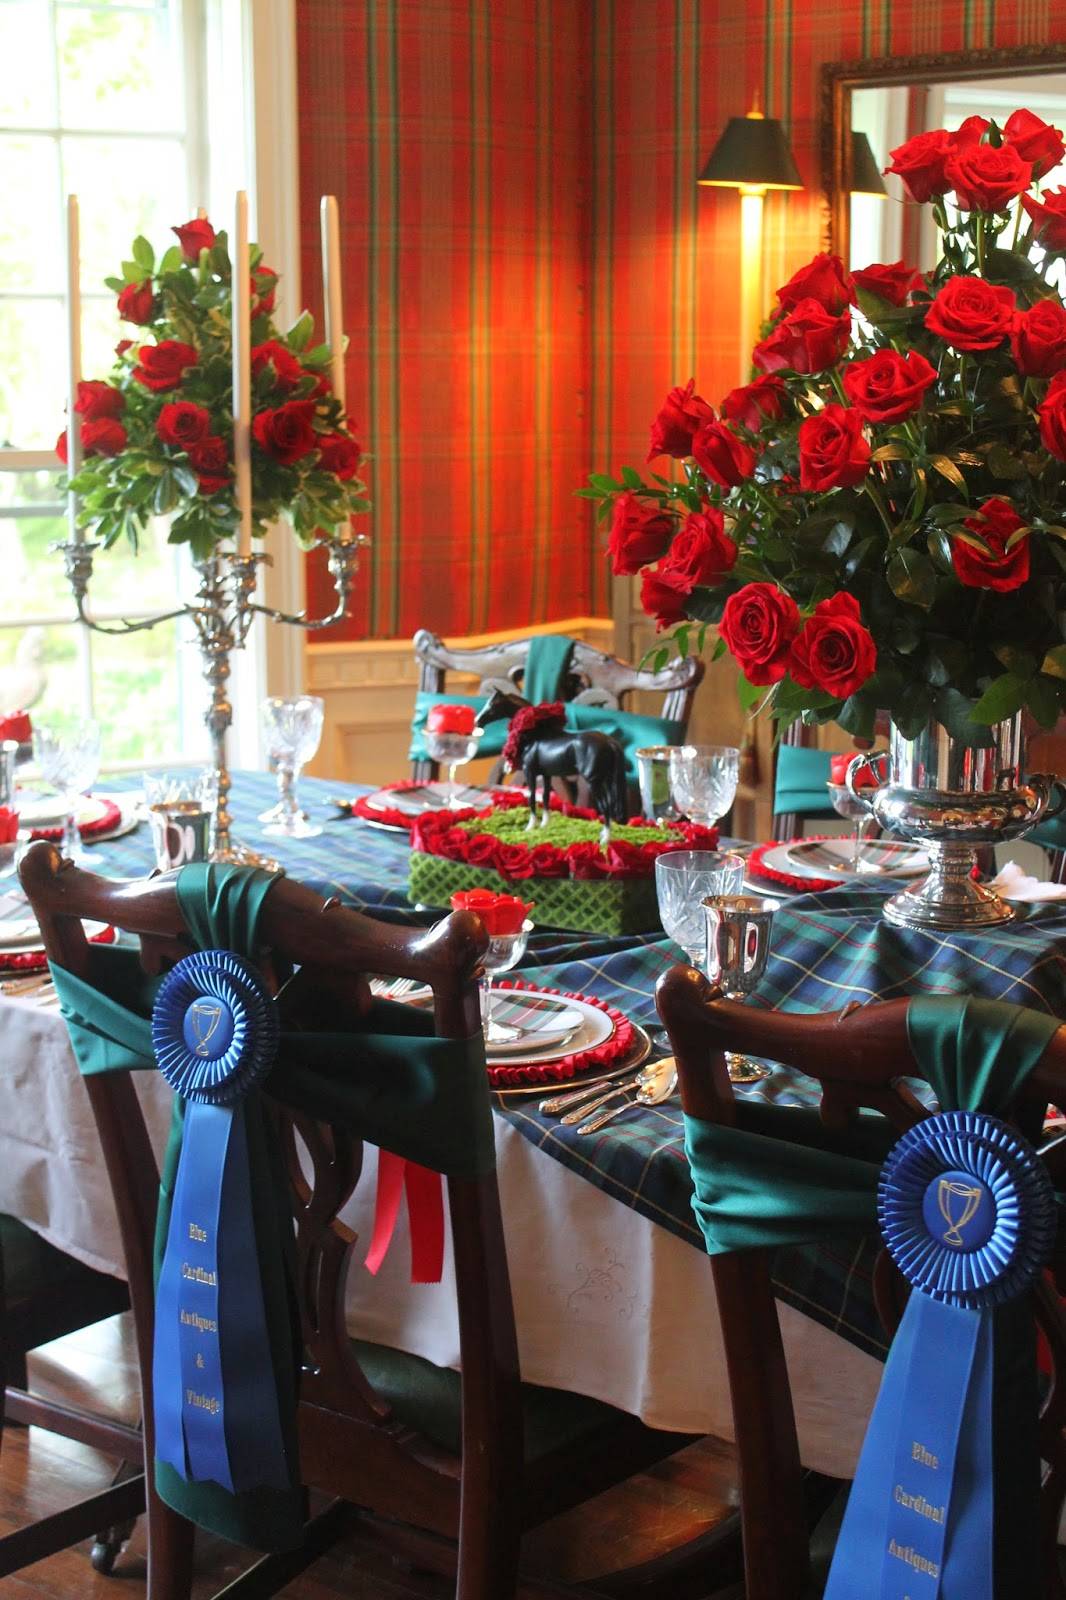 21 Ideas for a Great Kentucky Derby Party - Celebrate